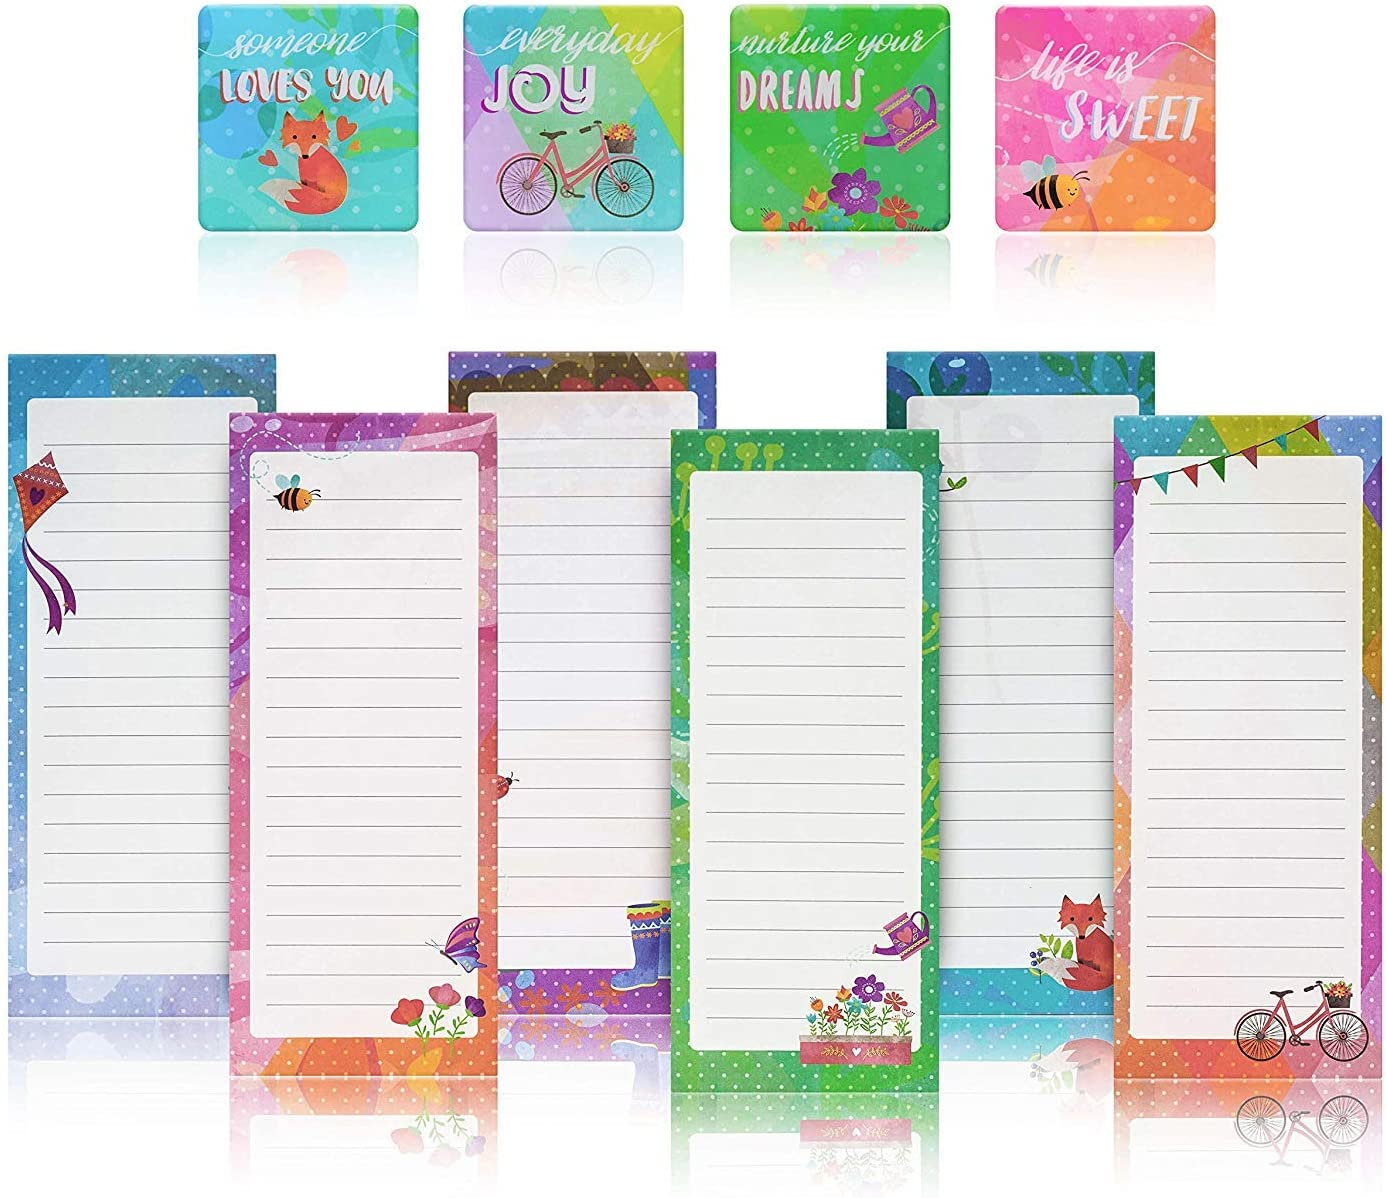 Charming Magnetic Notepads & Inspirational Refrigerator Magnets – To Do List, Grocery list, Perfect Housewarming Gifts, Thank You Gifts, Office Supplies – 6 Note Pads + 4 Fridge Magnets by PRTSupply